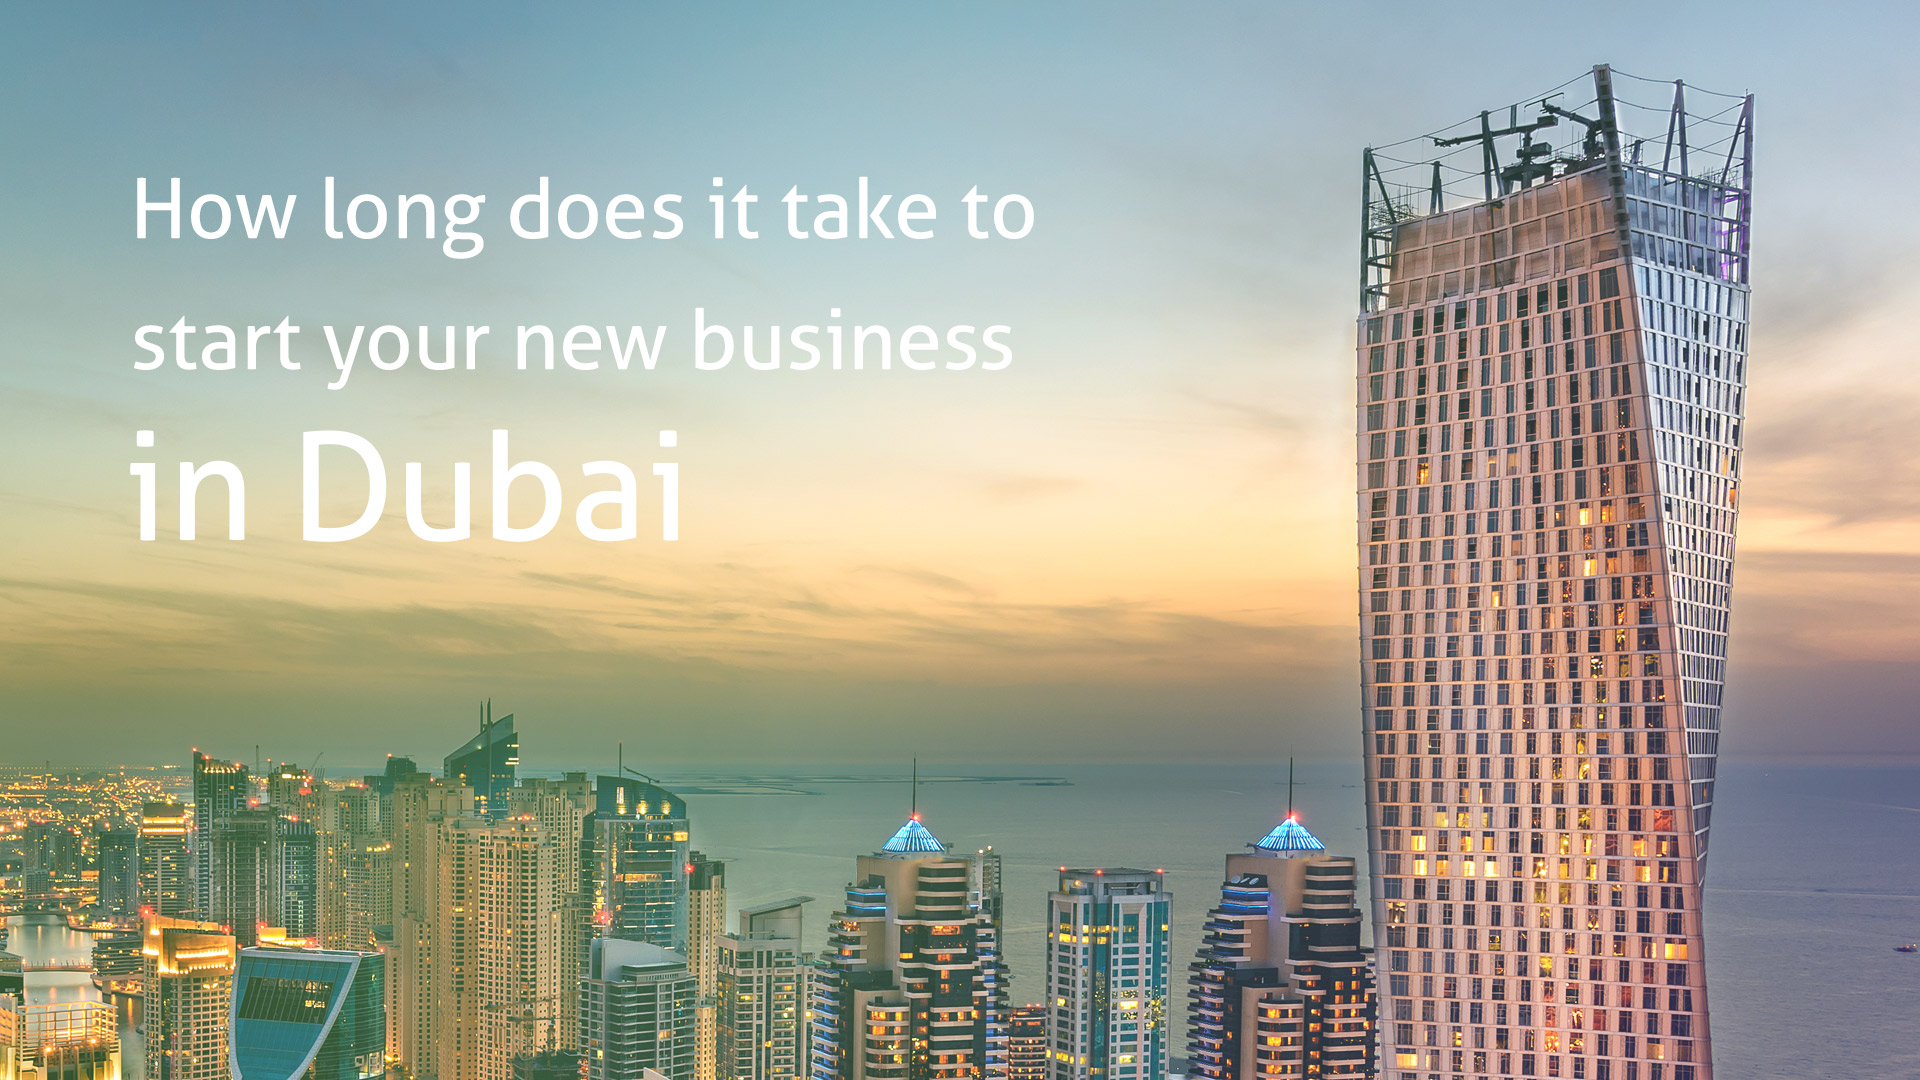 How long does it take to start your new business in Dubai